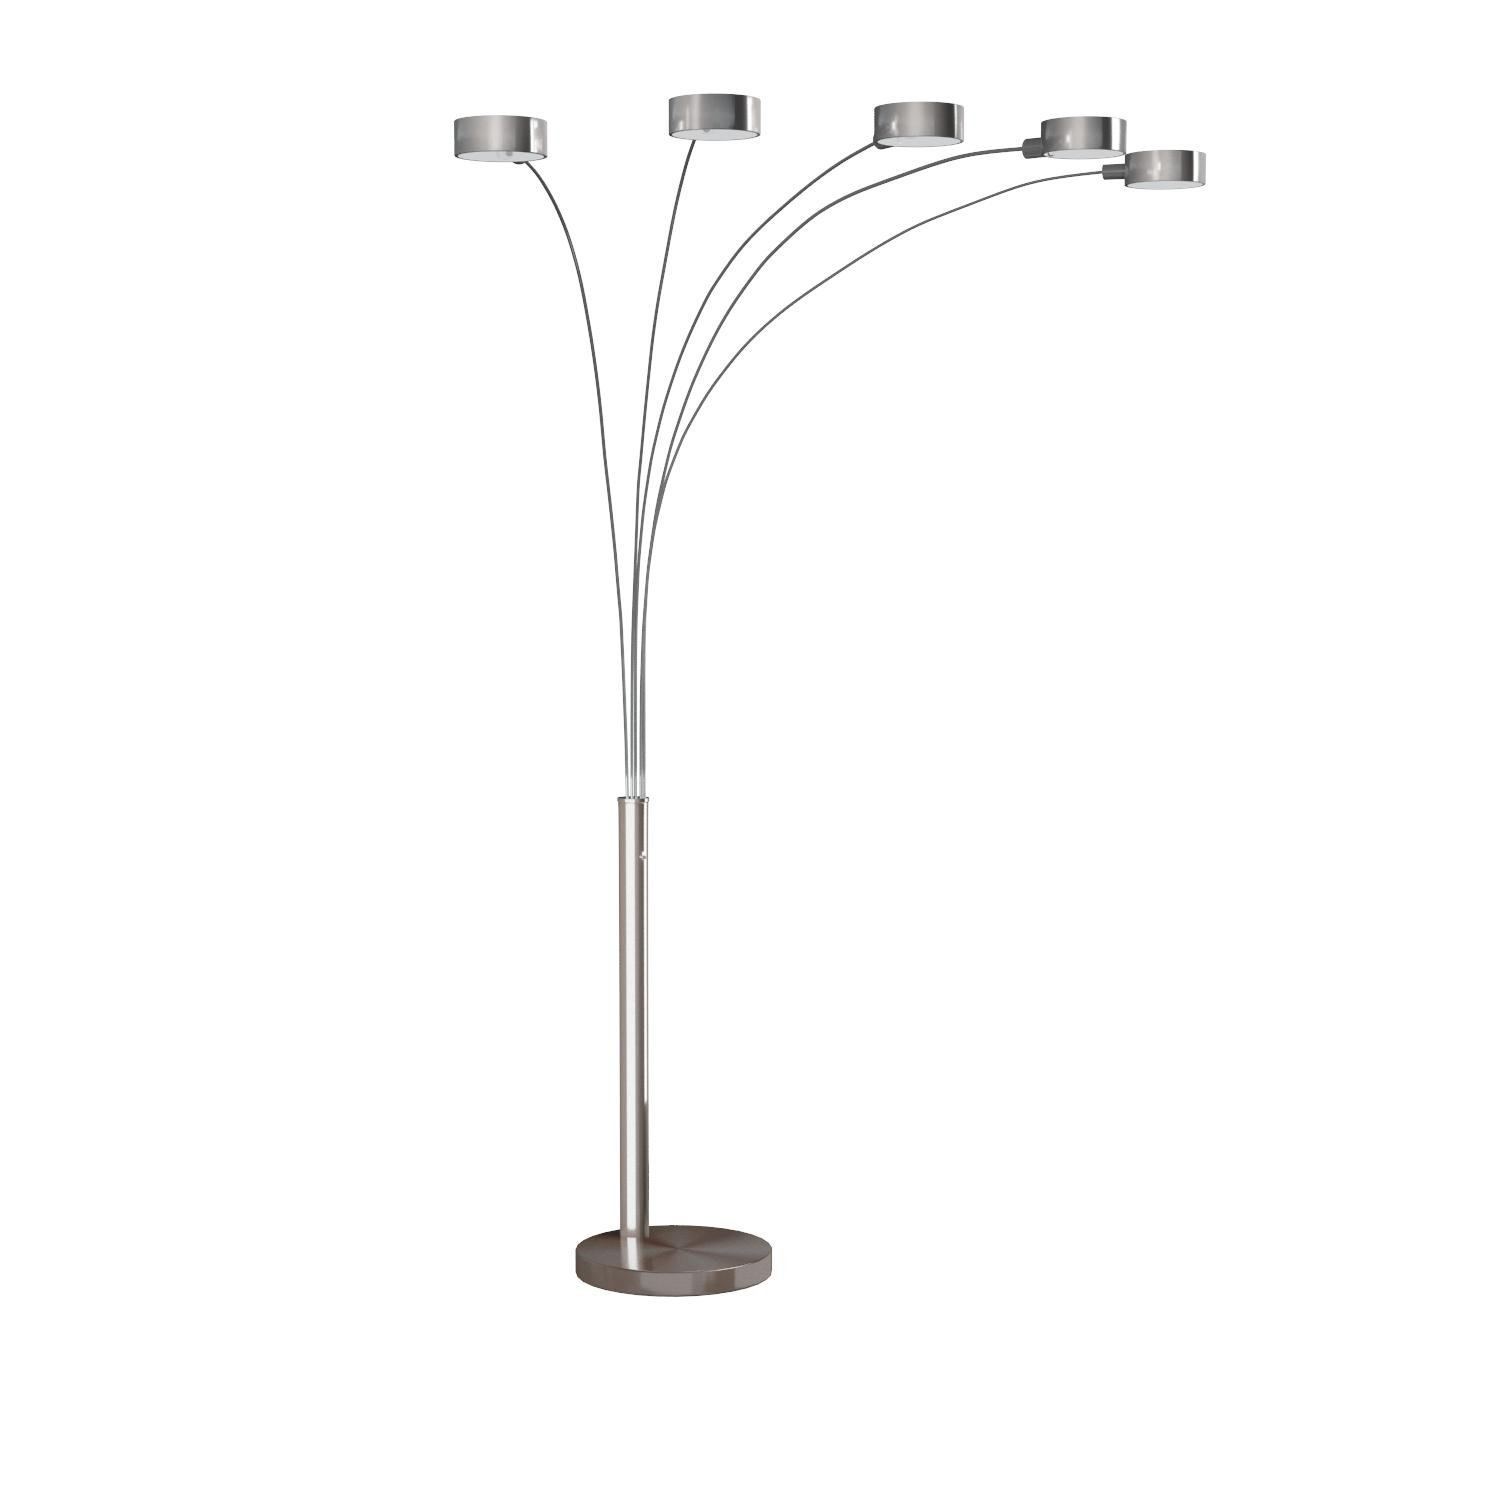 Artiva USA LED207901 Micah Plus Modern LED 5-Arched Satin Nickel Floor Lamp with Dimmer, 88'', Brushed Steel